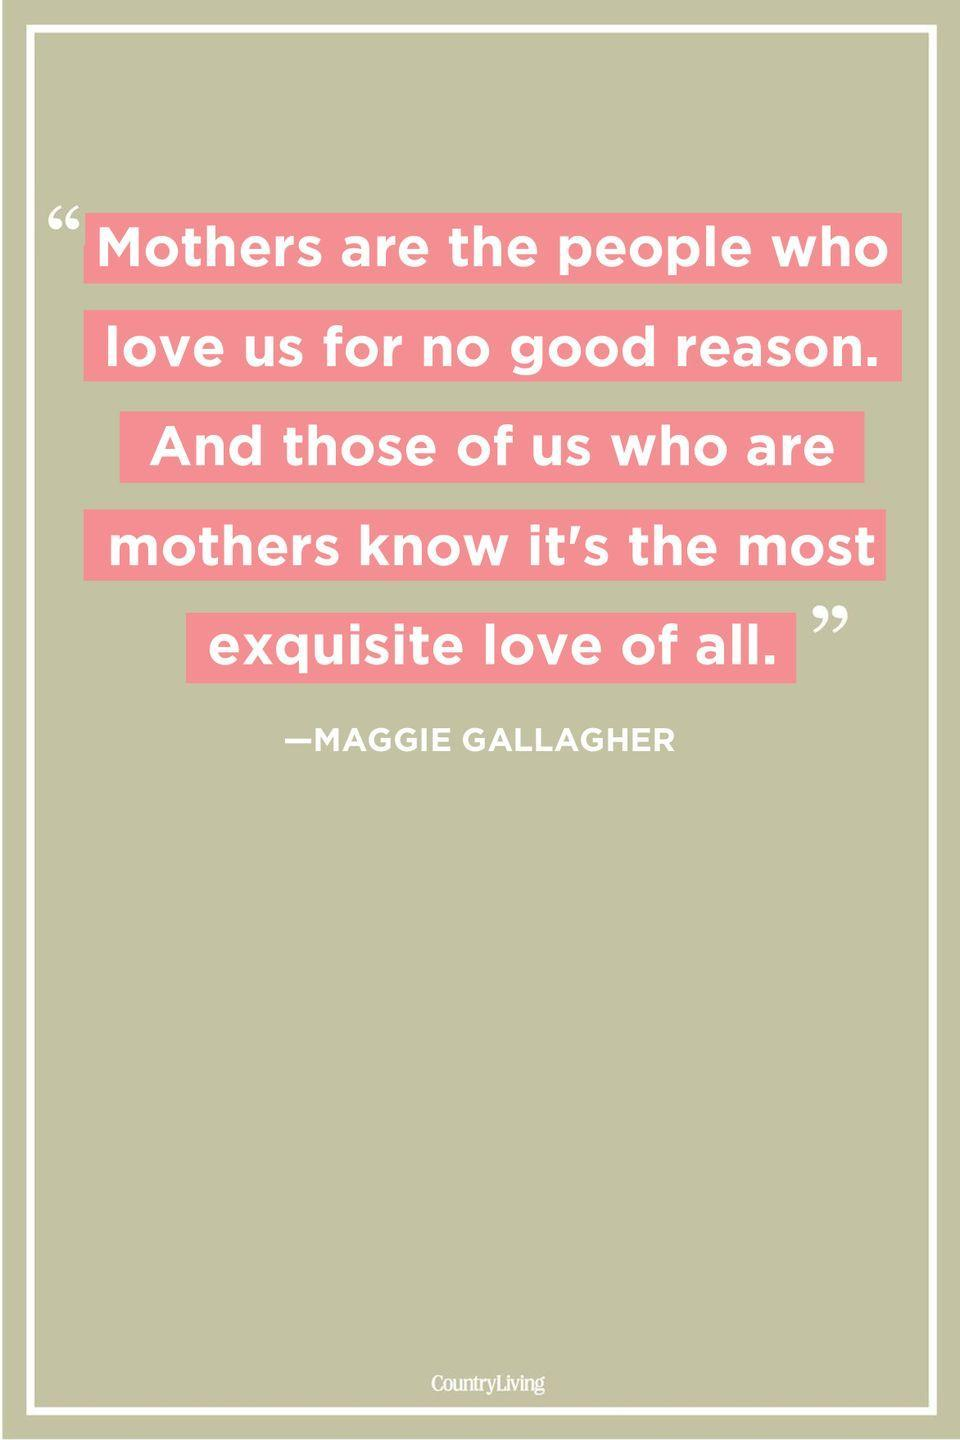 "<p>""Mothers are the people who love us for no good reason. And those of us who are mothers know it's the most exquisite love of all.""</p>"